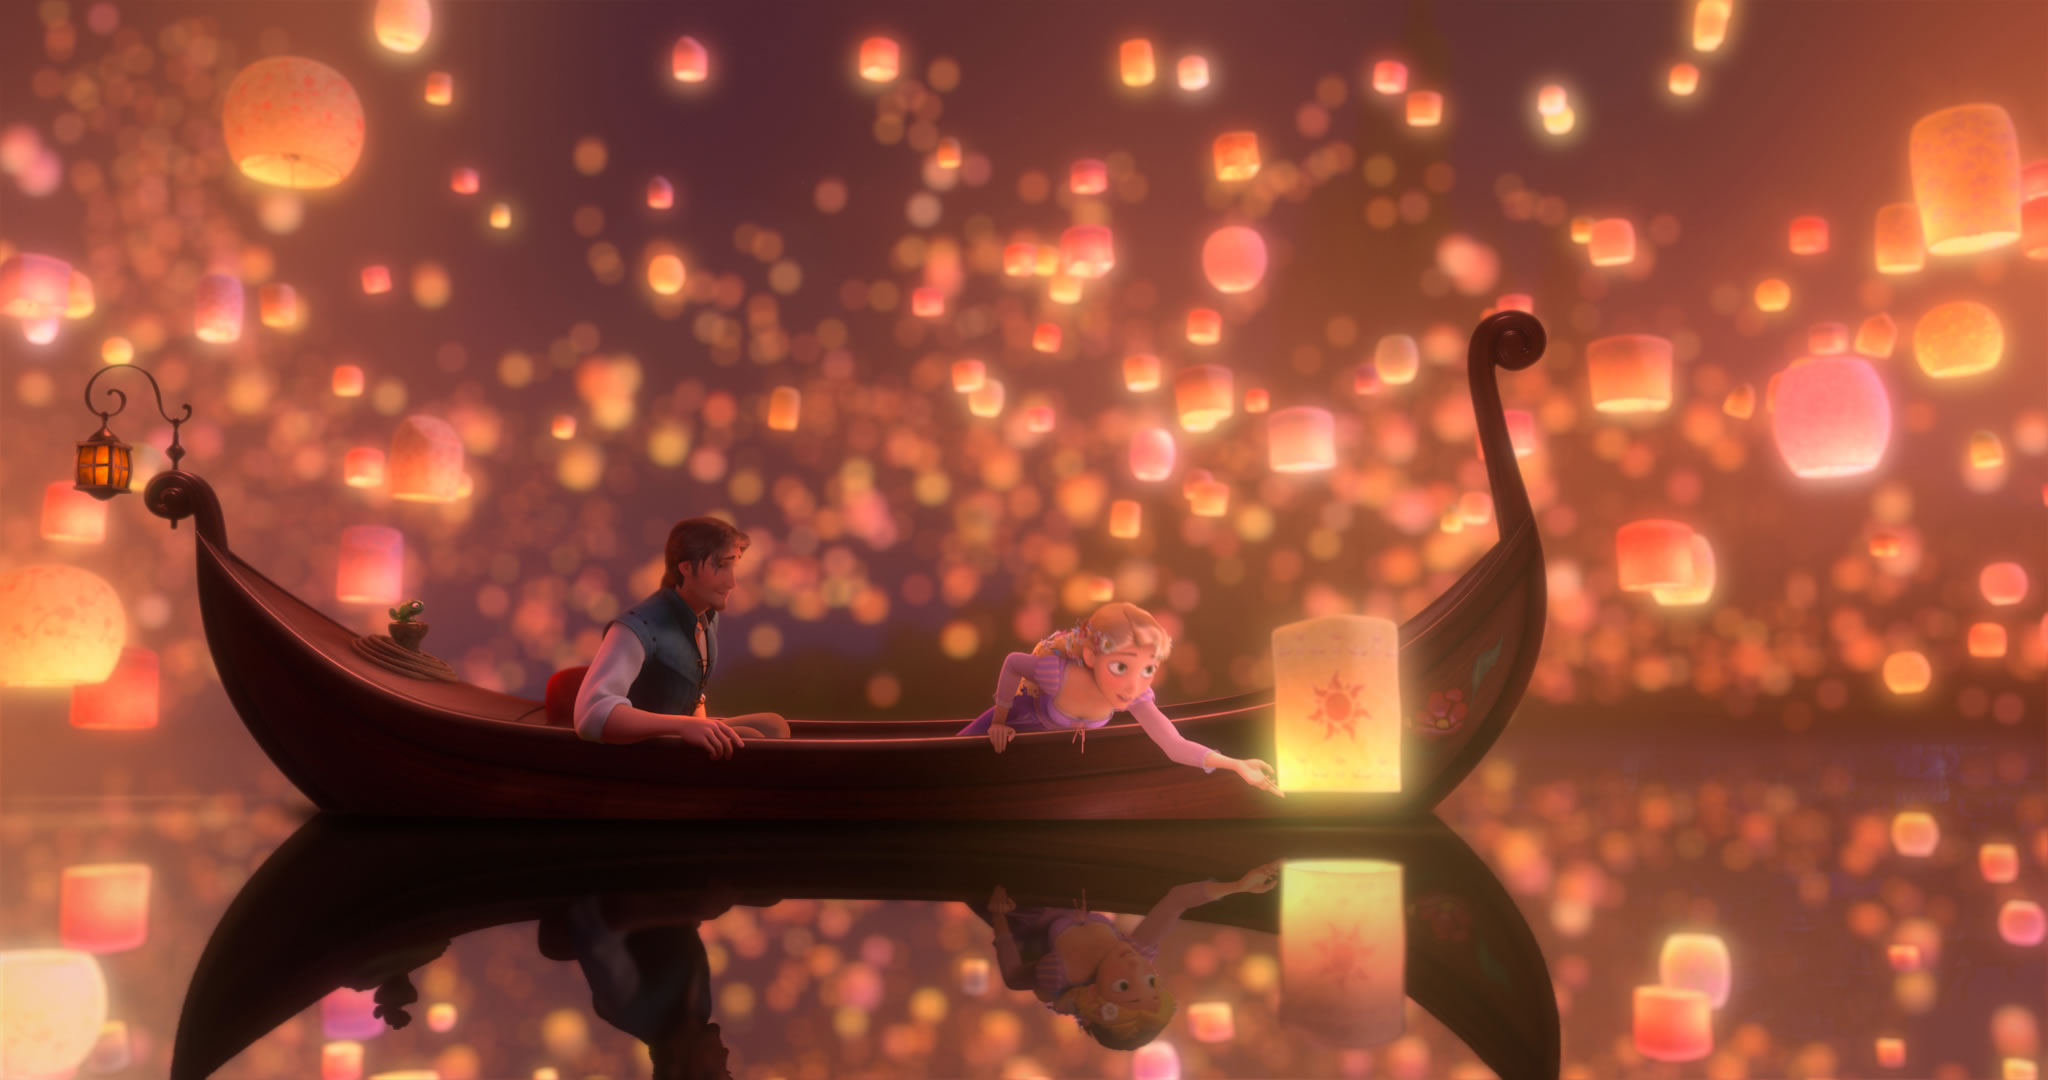 Tangled Wallpapers 2048x1080